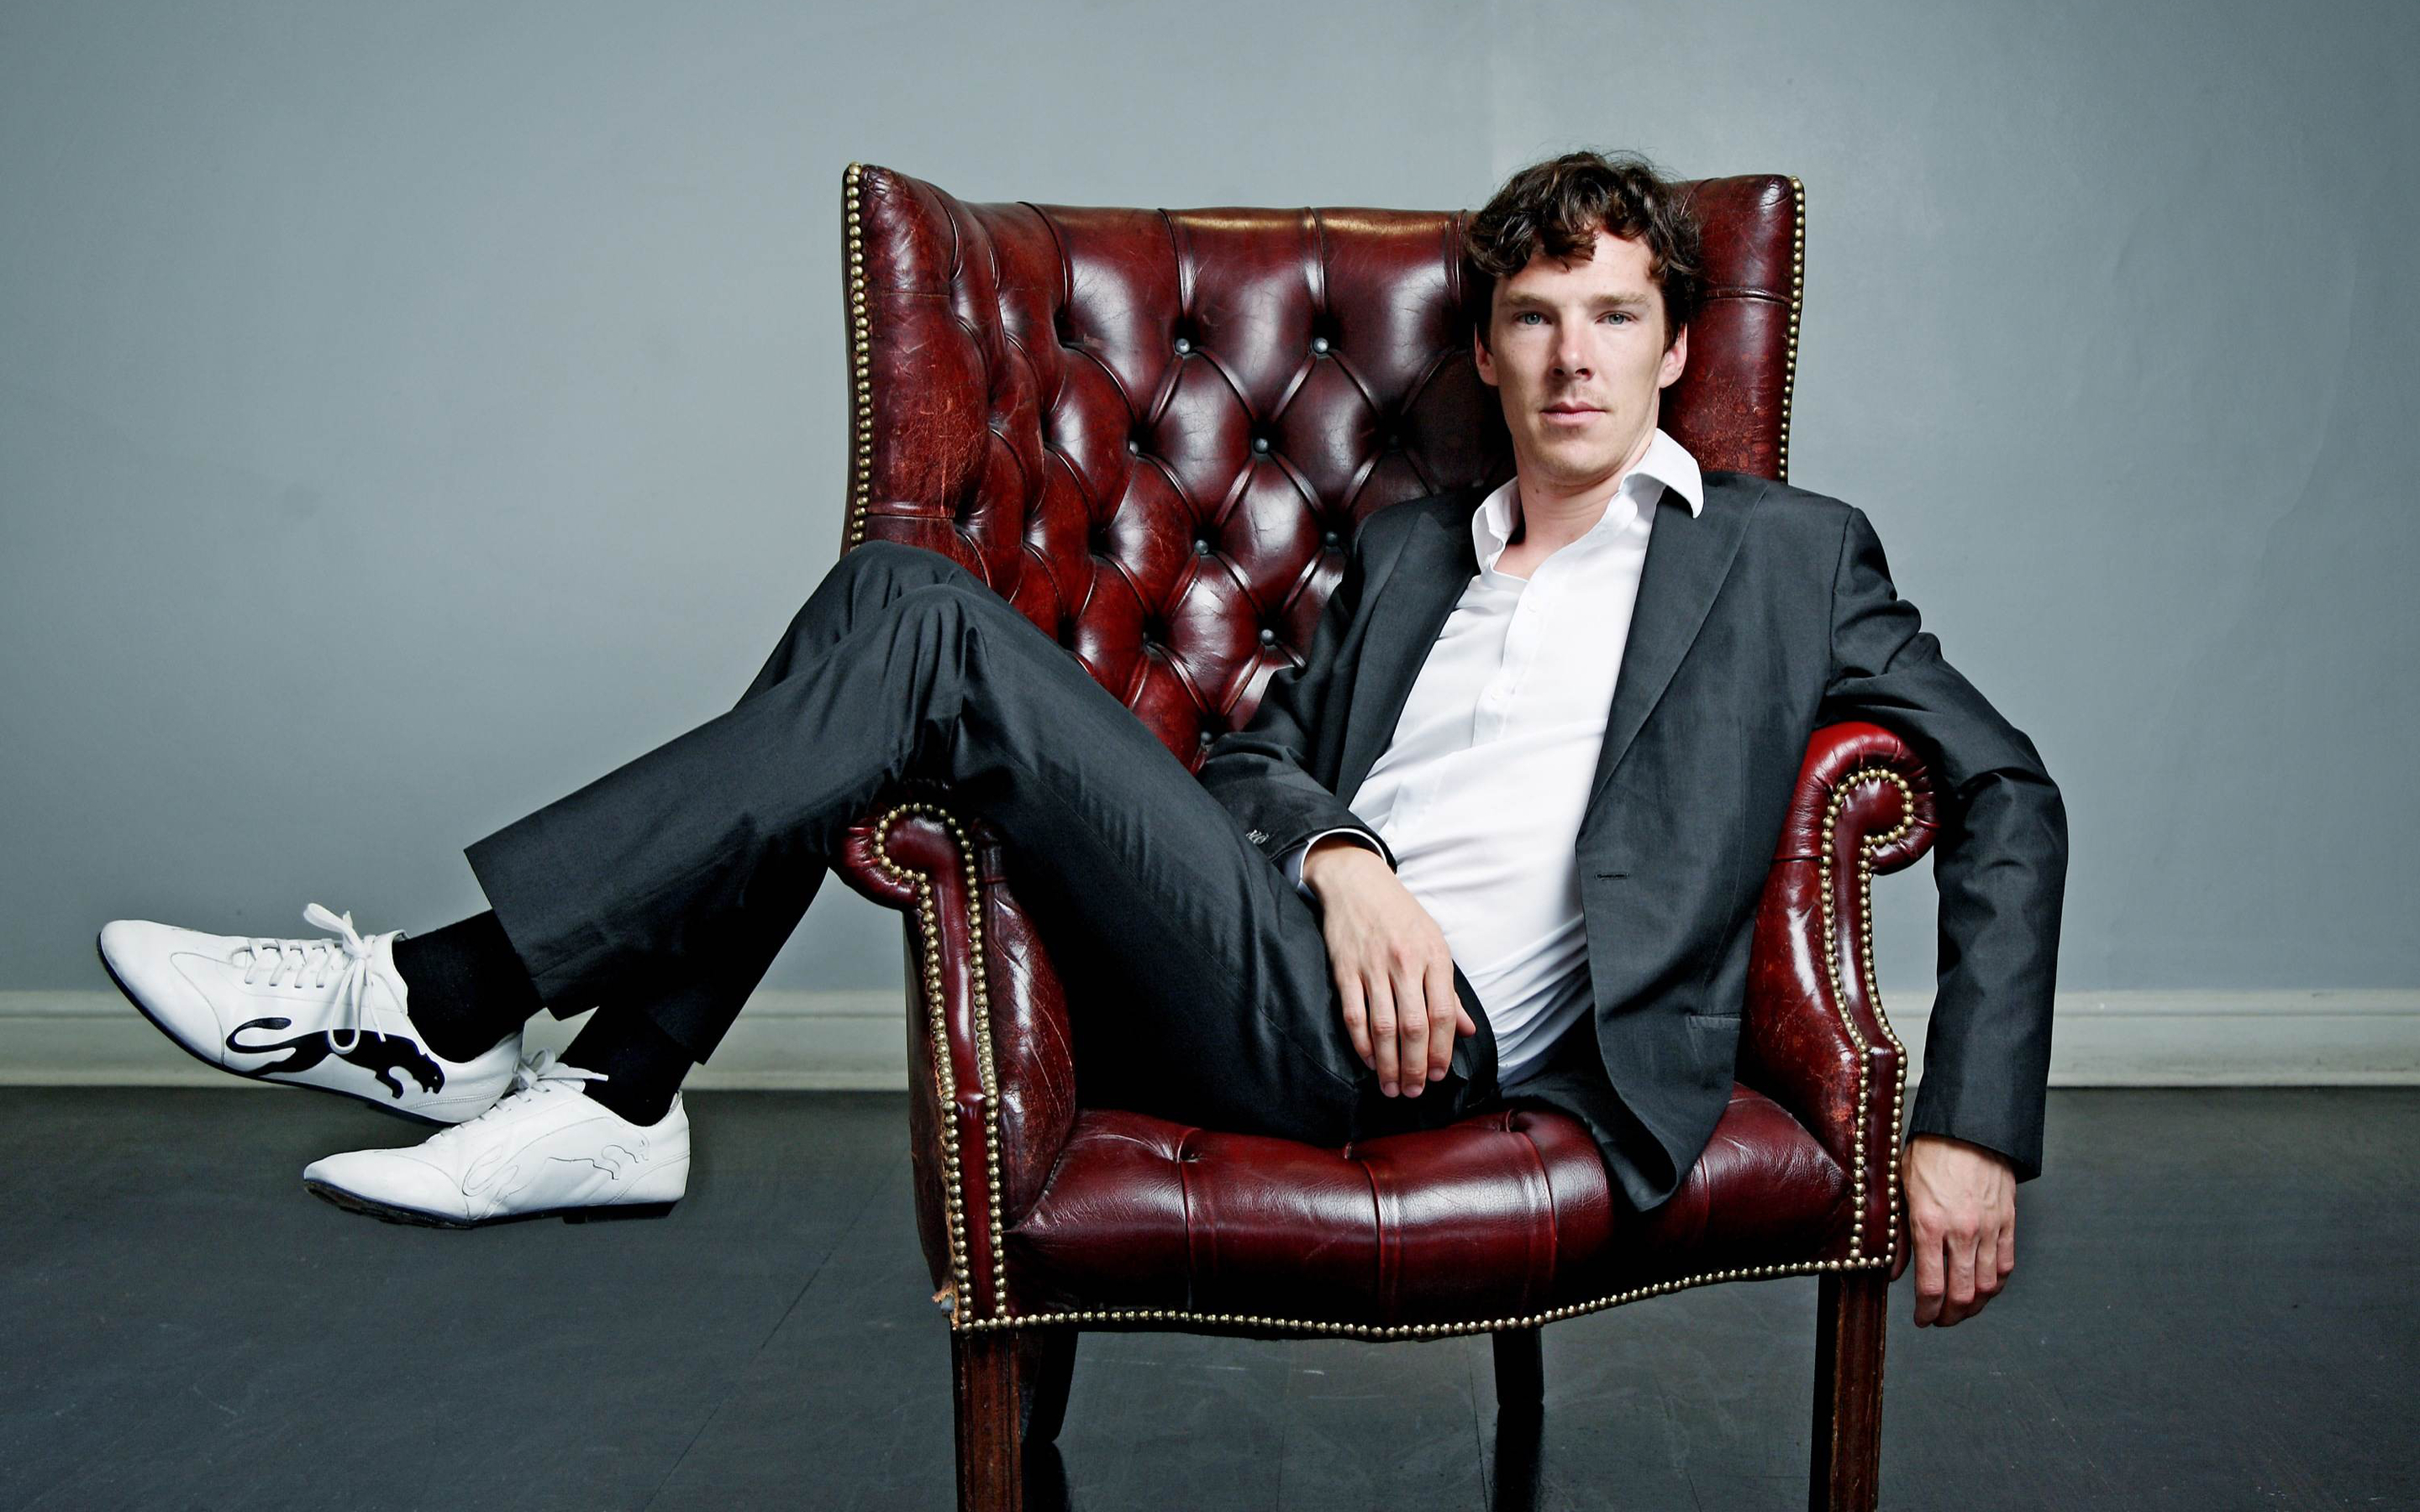 Benedict Cumberbatch Wallpaper Hd: Benedict Cumberbatch Full HD Wallpaper And Background